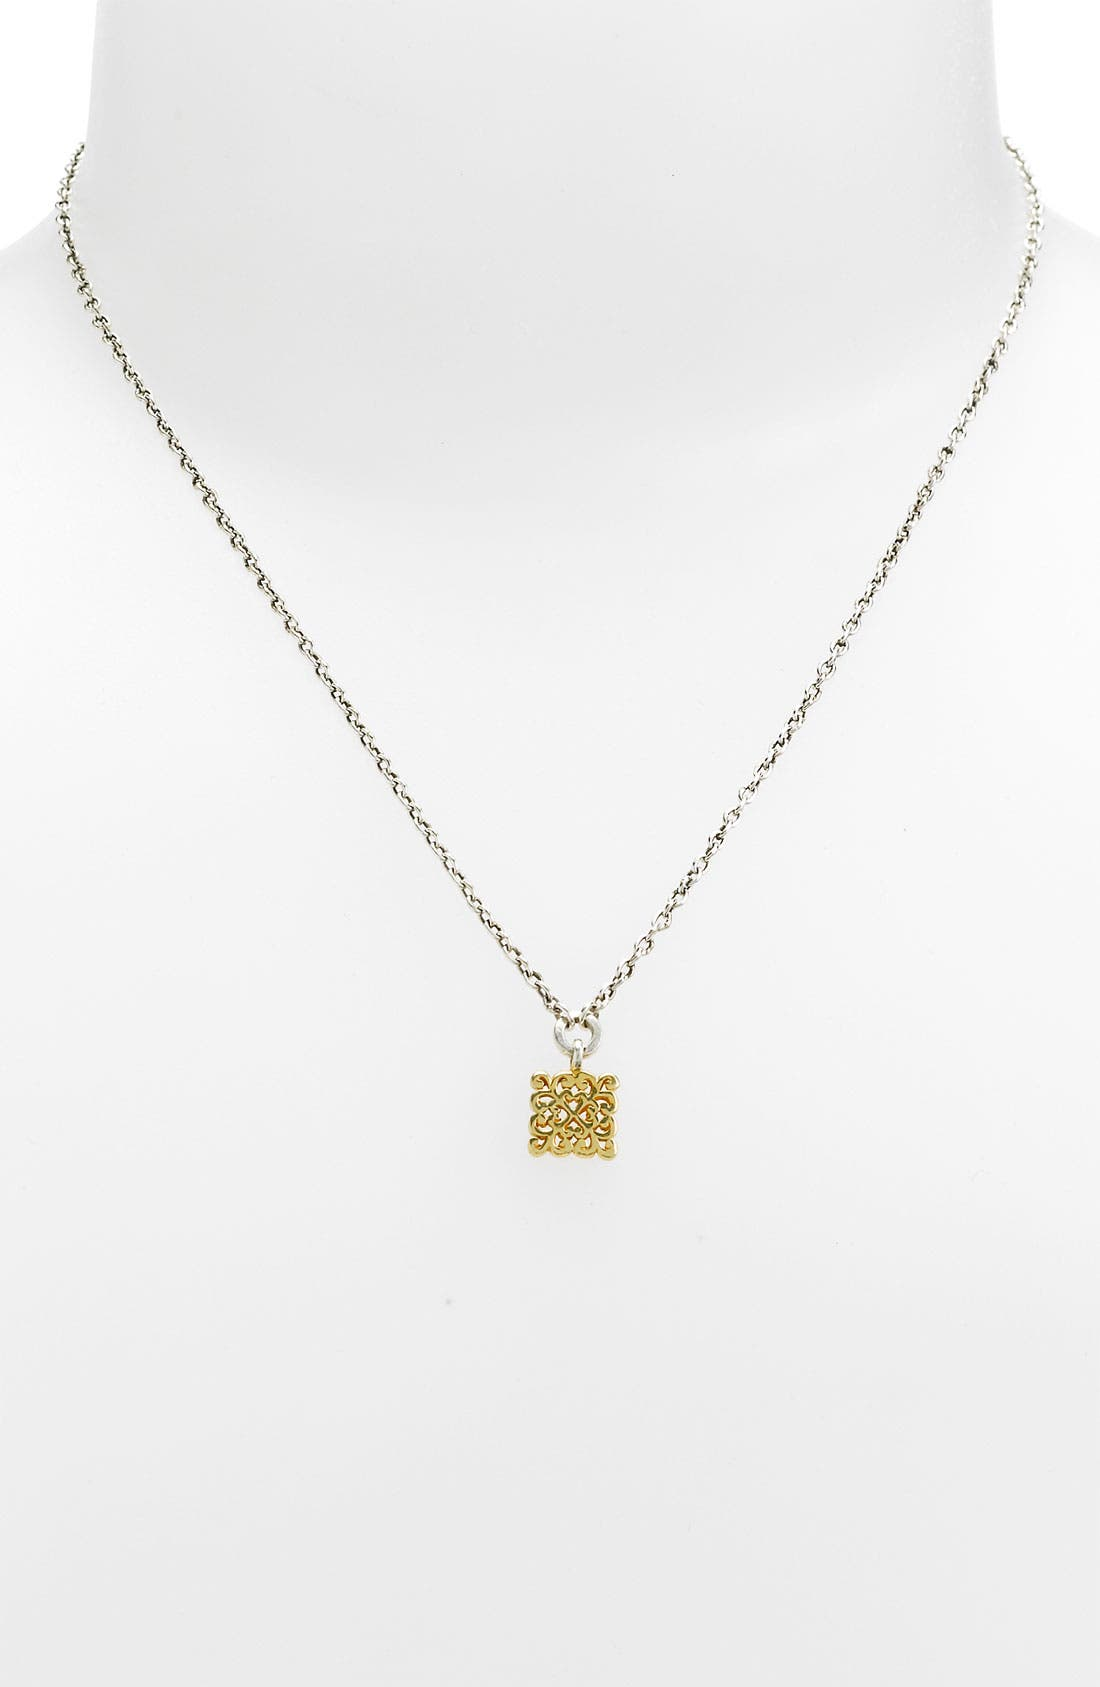 Alternate Image 1 Selected - Lois Hill 'Two Tone Organic Geo' Extra Small Pendant Necklace (Nordstrom Exclusive)